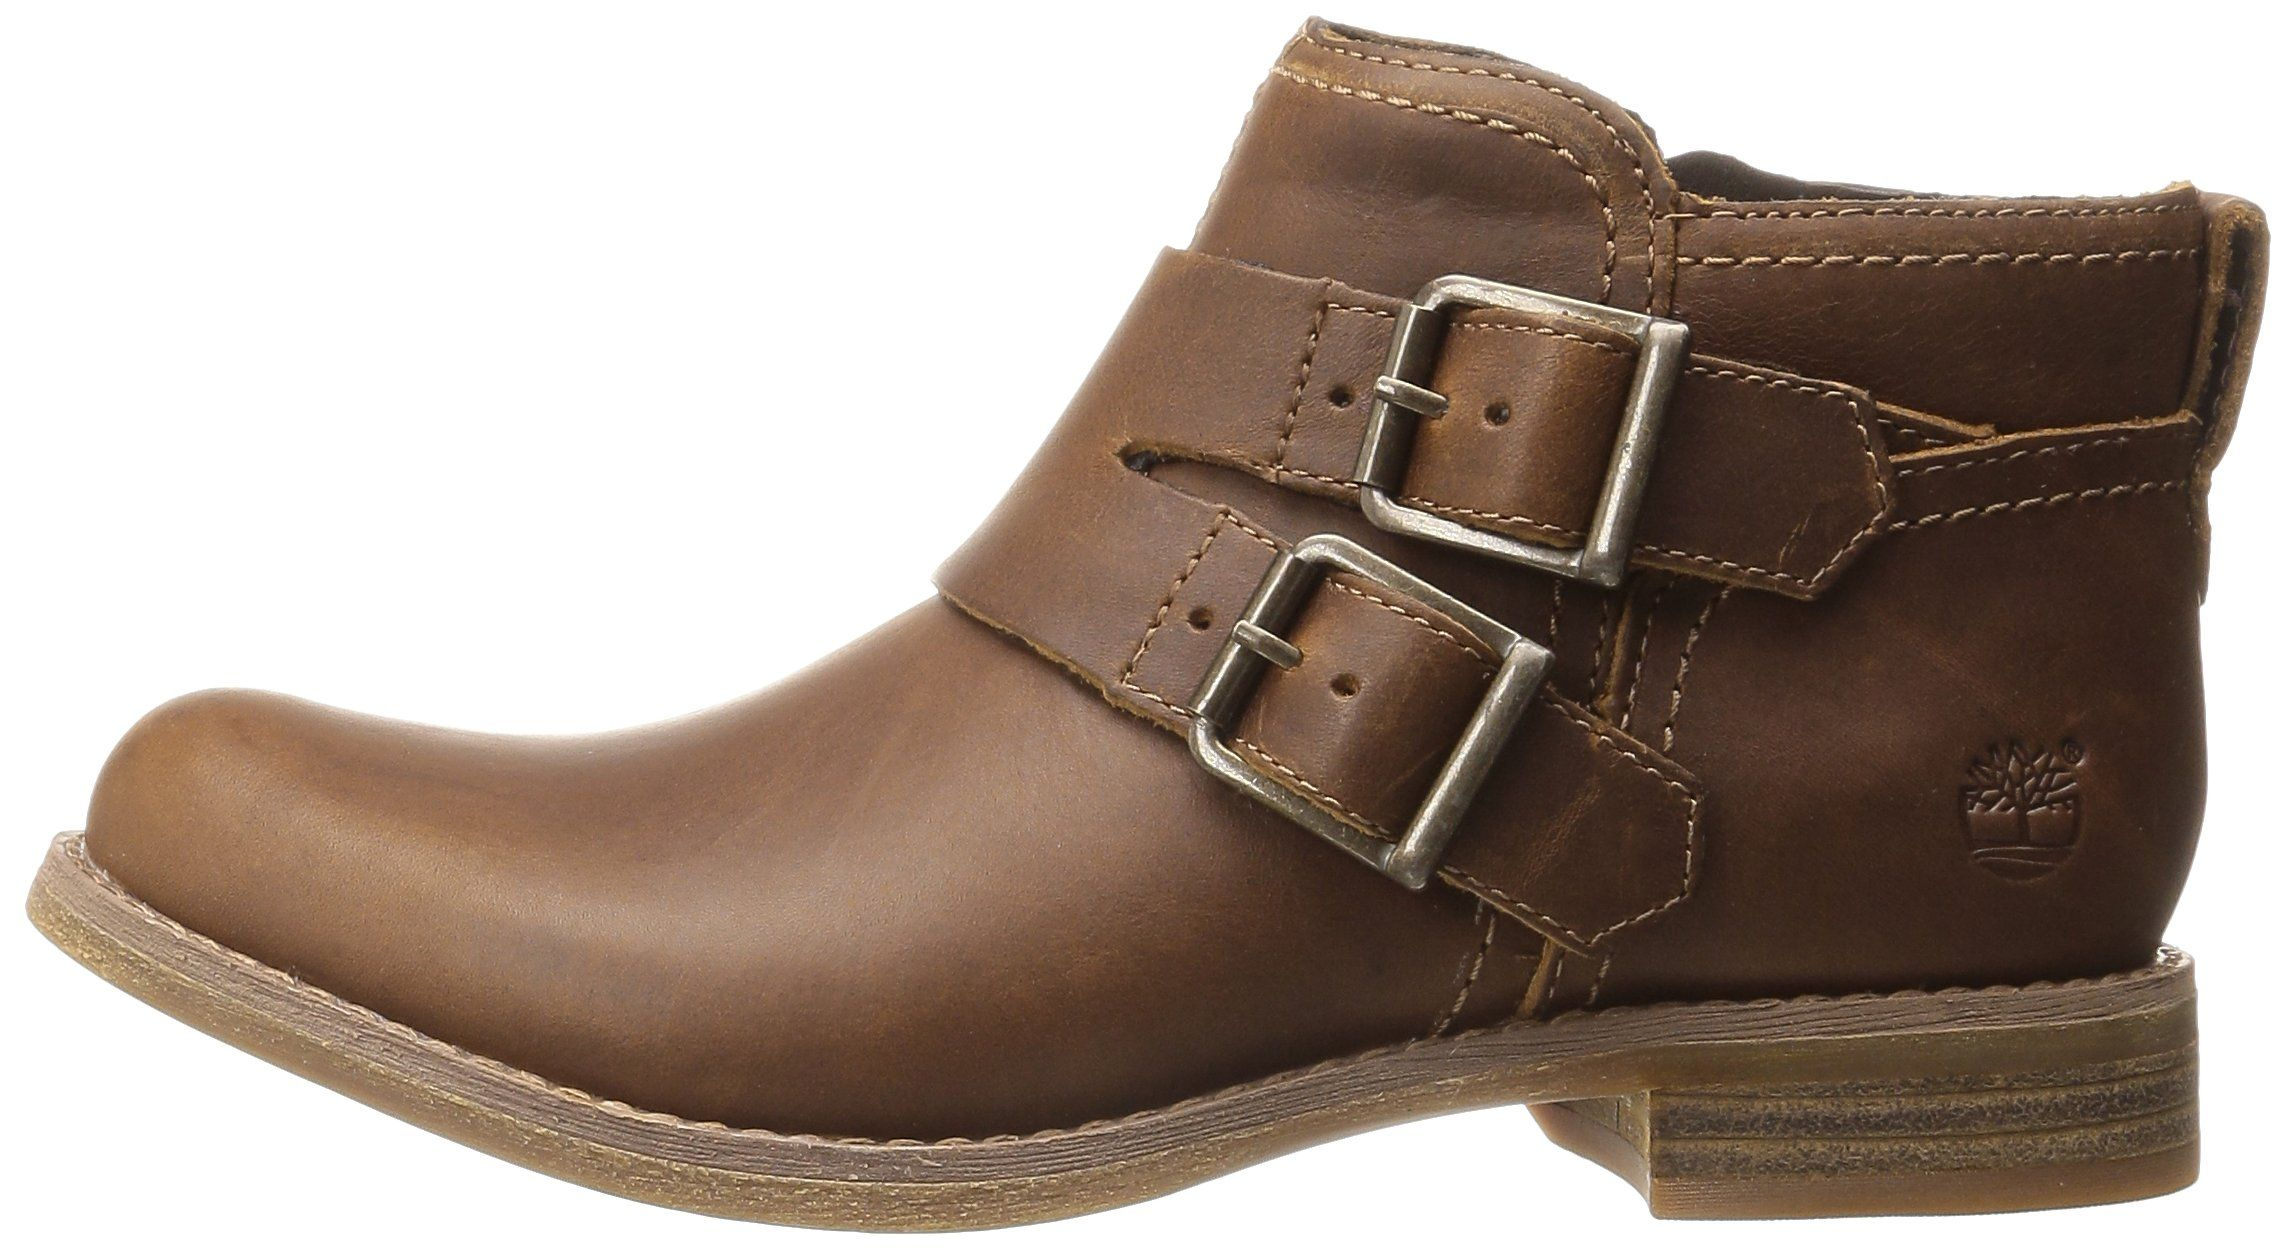 Timberland Womens Savin Hill Double Buckle Ankle Boot Wheat Forty 9 M US ***